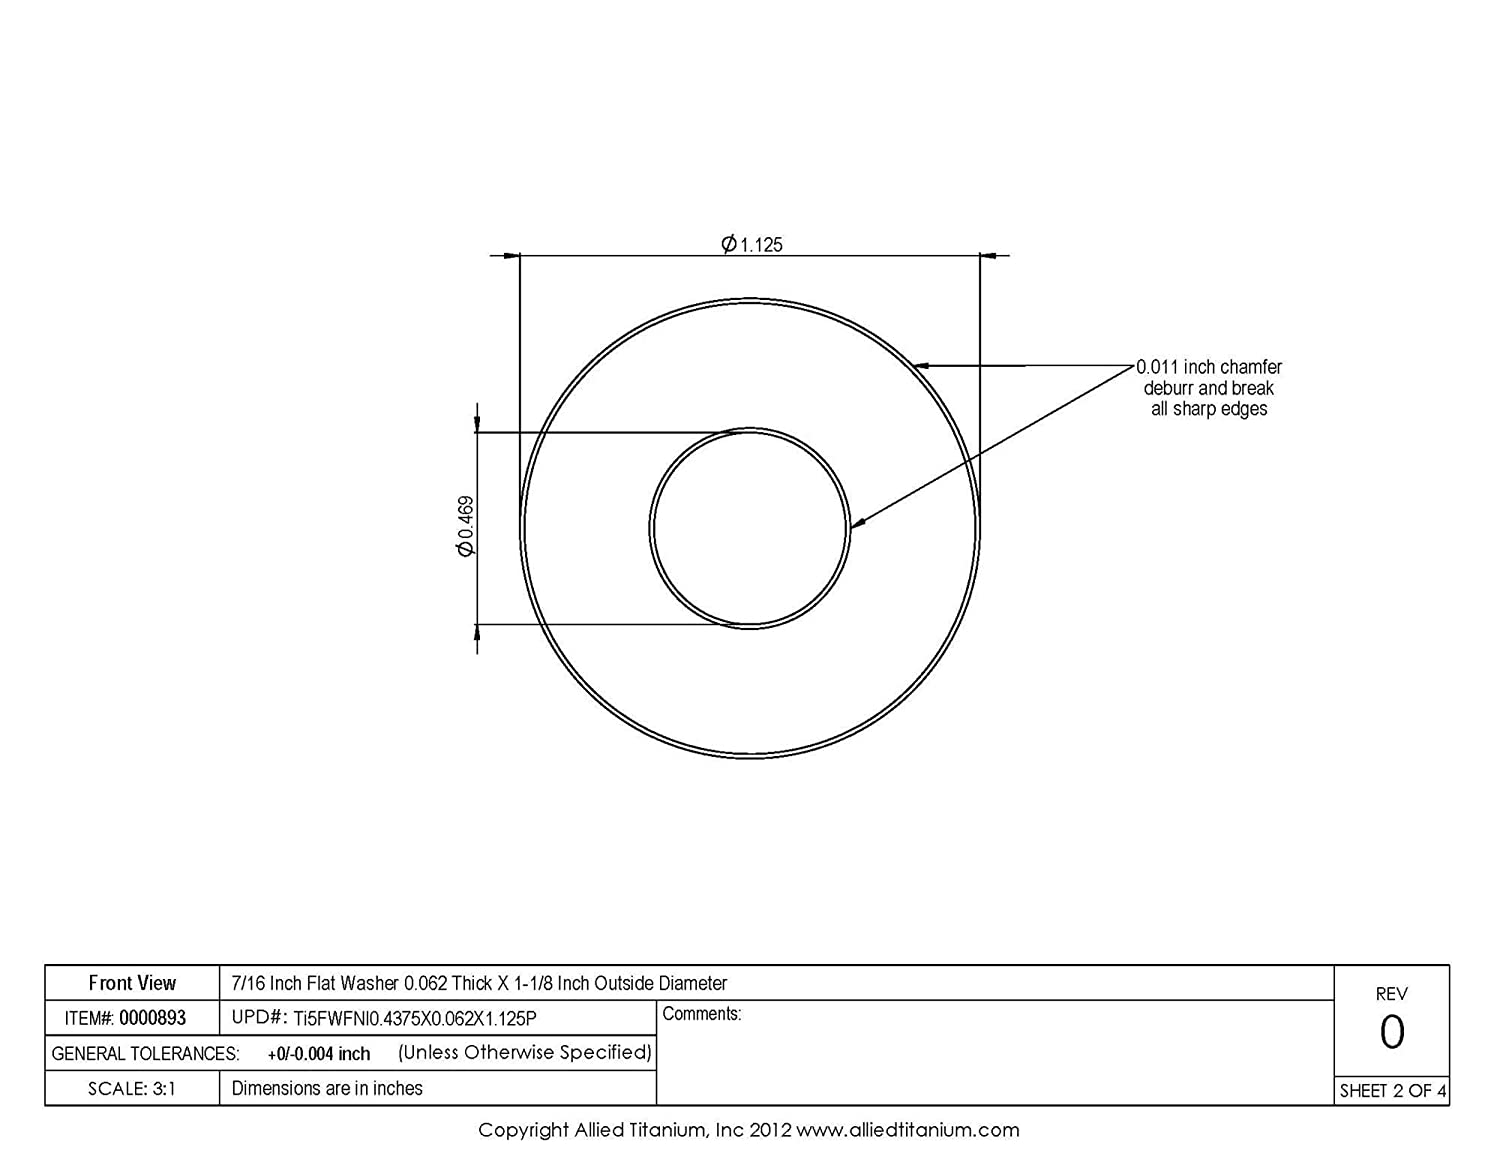 Grade 5 Pack of 10 7//16 Inch Flat Washer 0.062 Thick X 1-1//8 Inch Outside Diameter Ti-6Al-4V Allied Titanium 0000893,